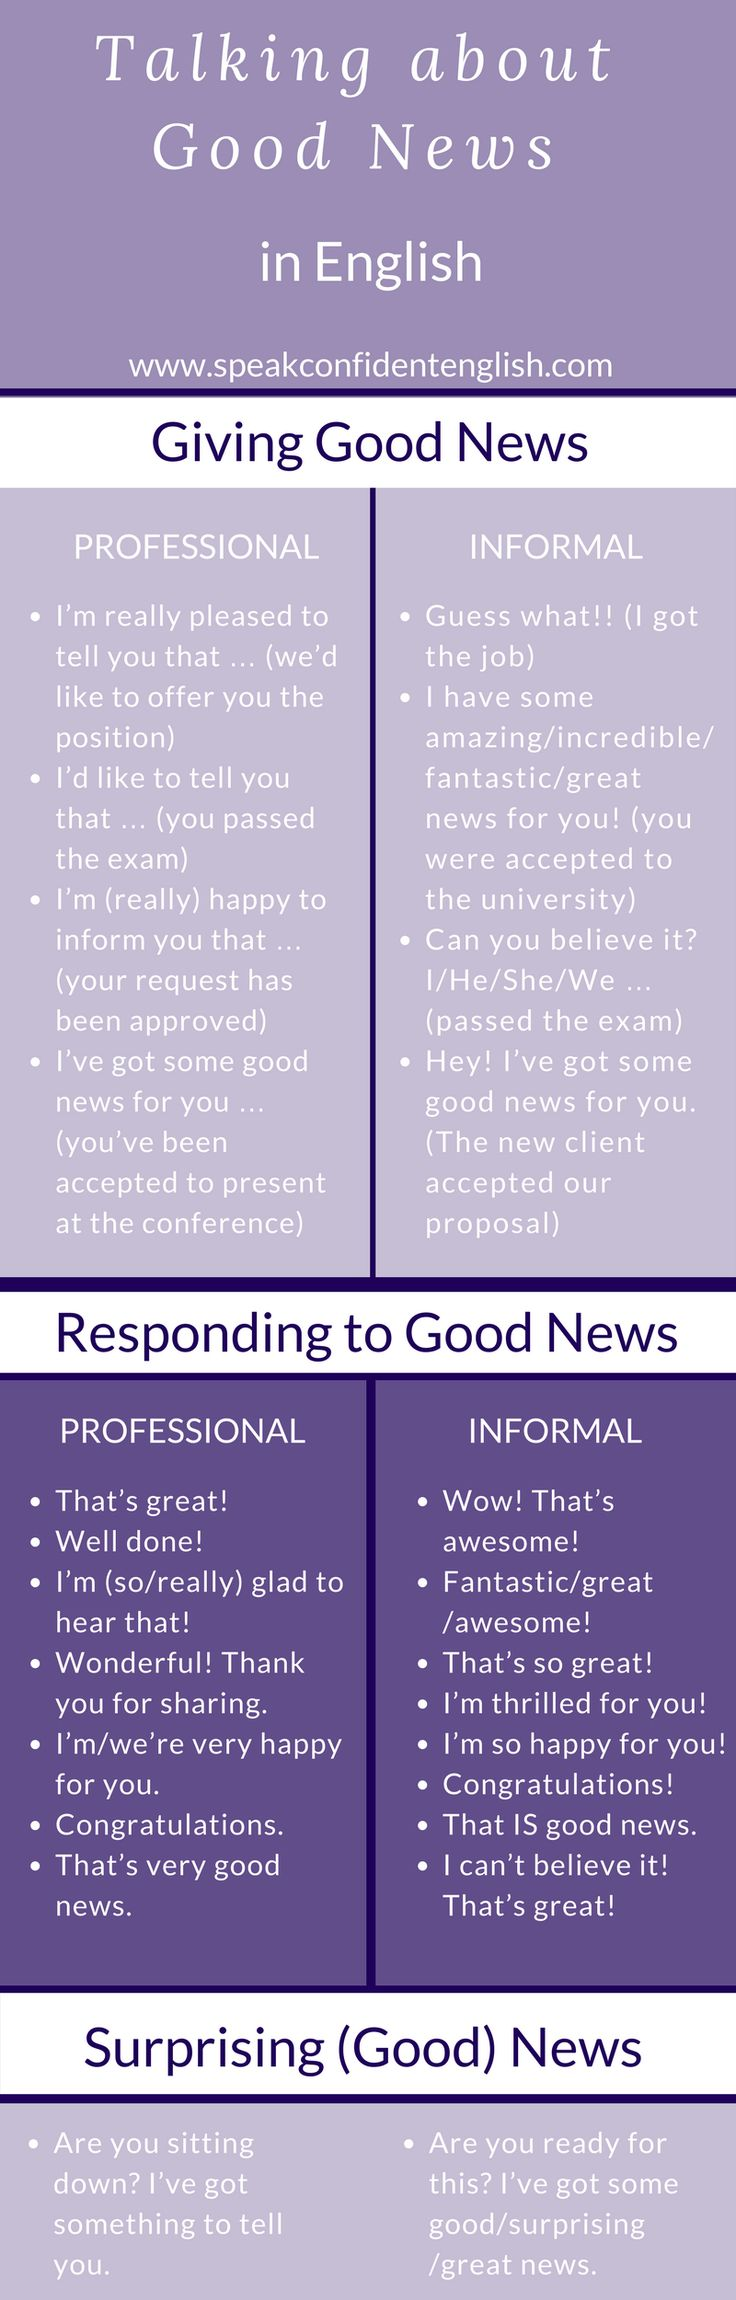 Do you have some good news to share in English? Use these expressions to sound more natural. Visit the lesson and be sure to watch the video for a useful pronunciation tip! http://www.speakconfidentenglish.com/giving-good-news/?utm_campaign=coschedule&utm_source=pinterest&utm_medium=Speak%20Confident%20English%20%7C%20English%20Fluency%20Trainer&utm_content=Giving%20Good%20News%20in%20English